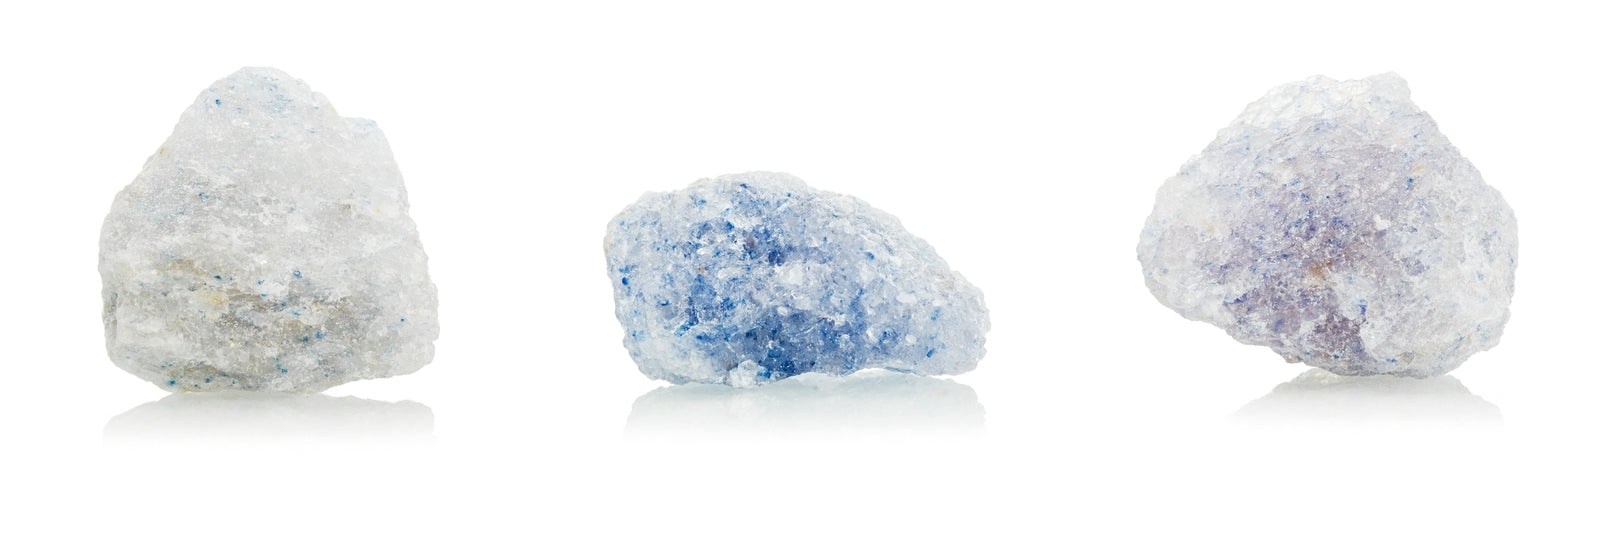 Rivsalt Blue - Persian Blue Rock Salt 3pc